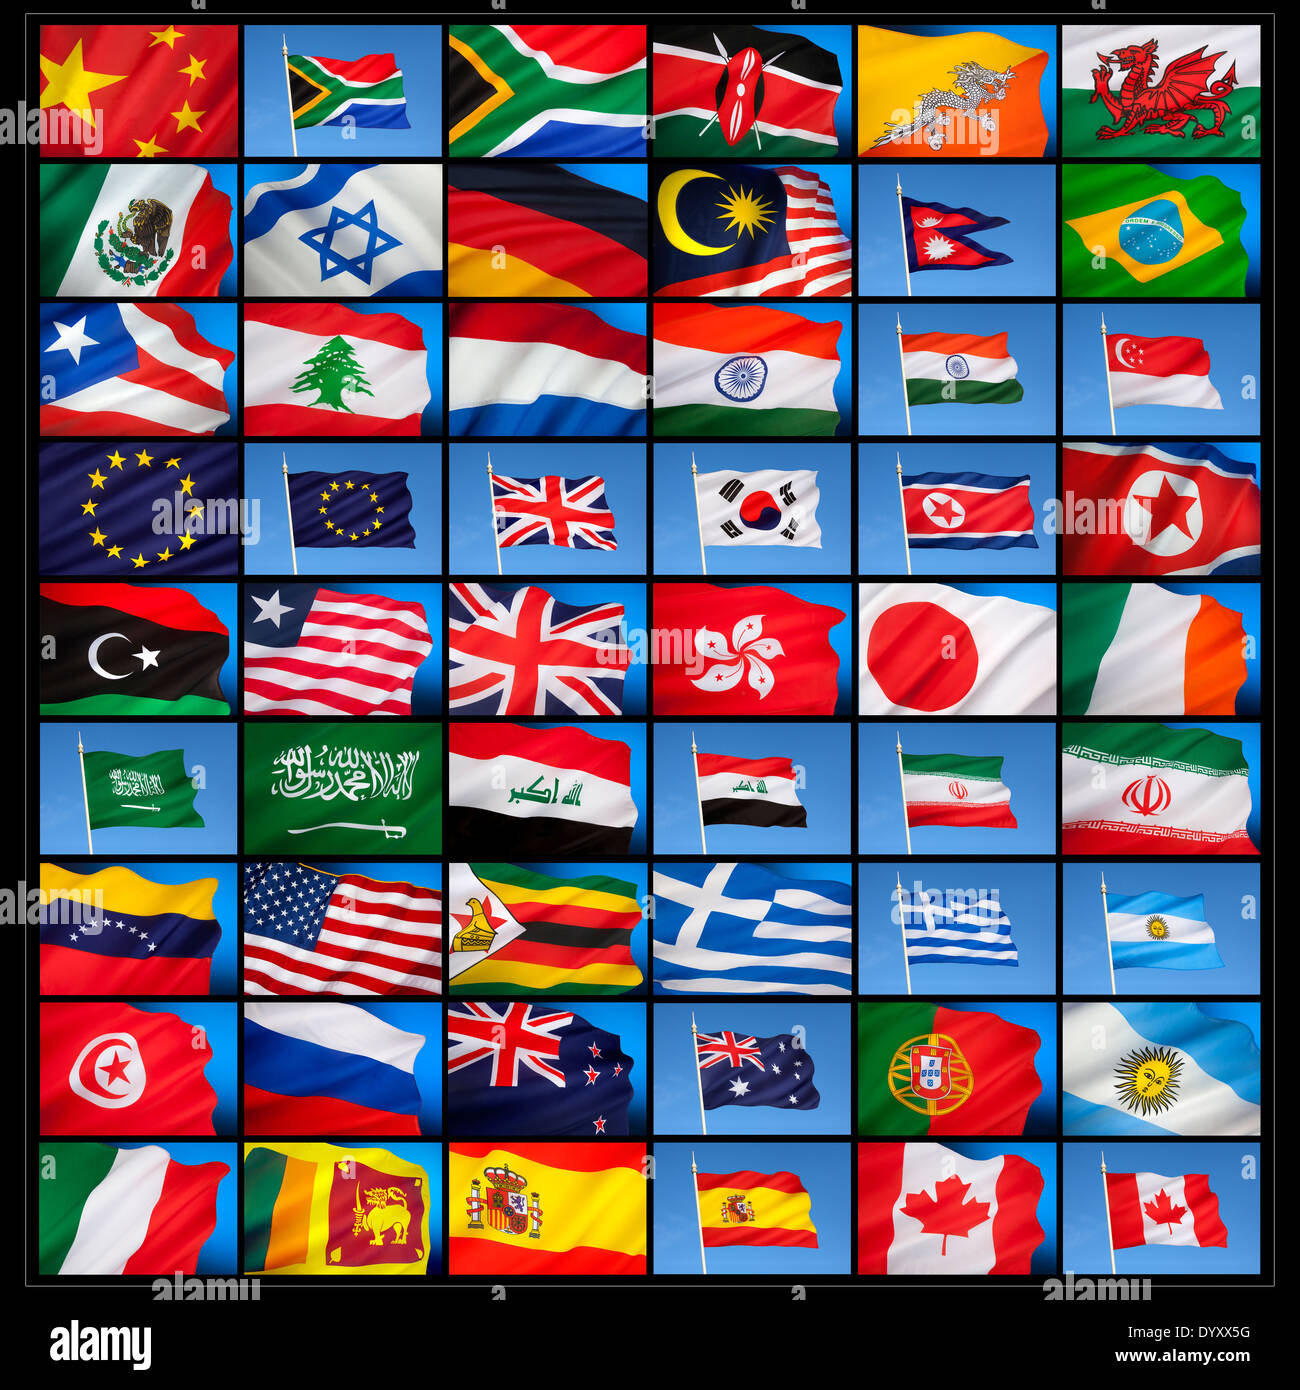 National flags from countries around the world Stock Photo